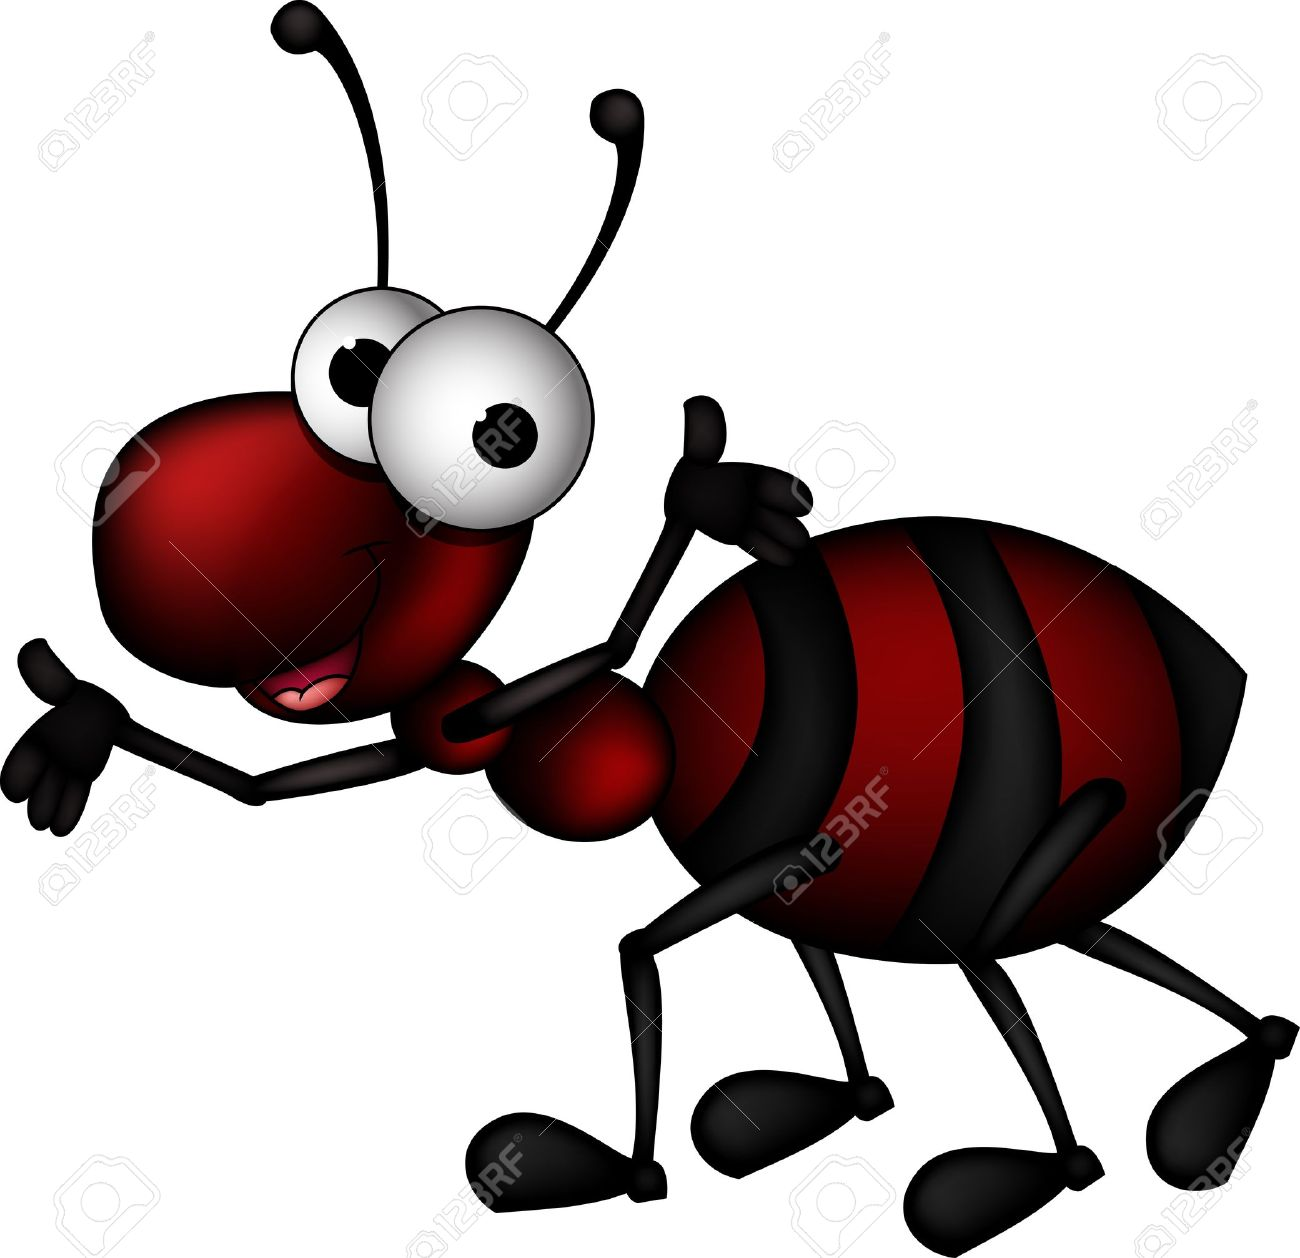 red ant cartoon Stock Vector - 16925679